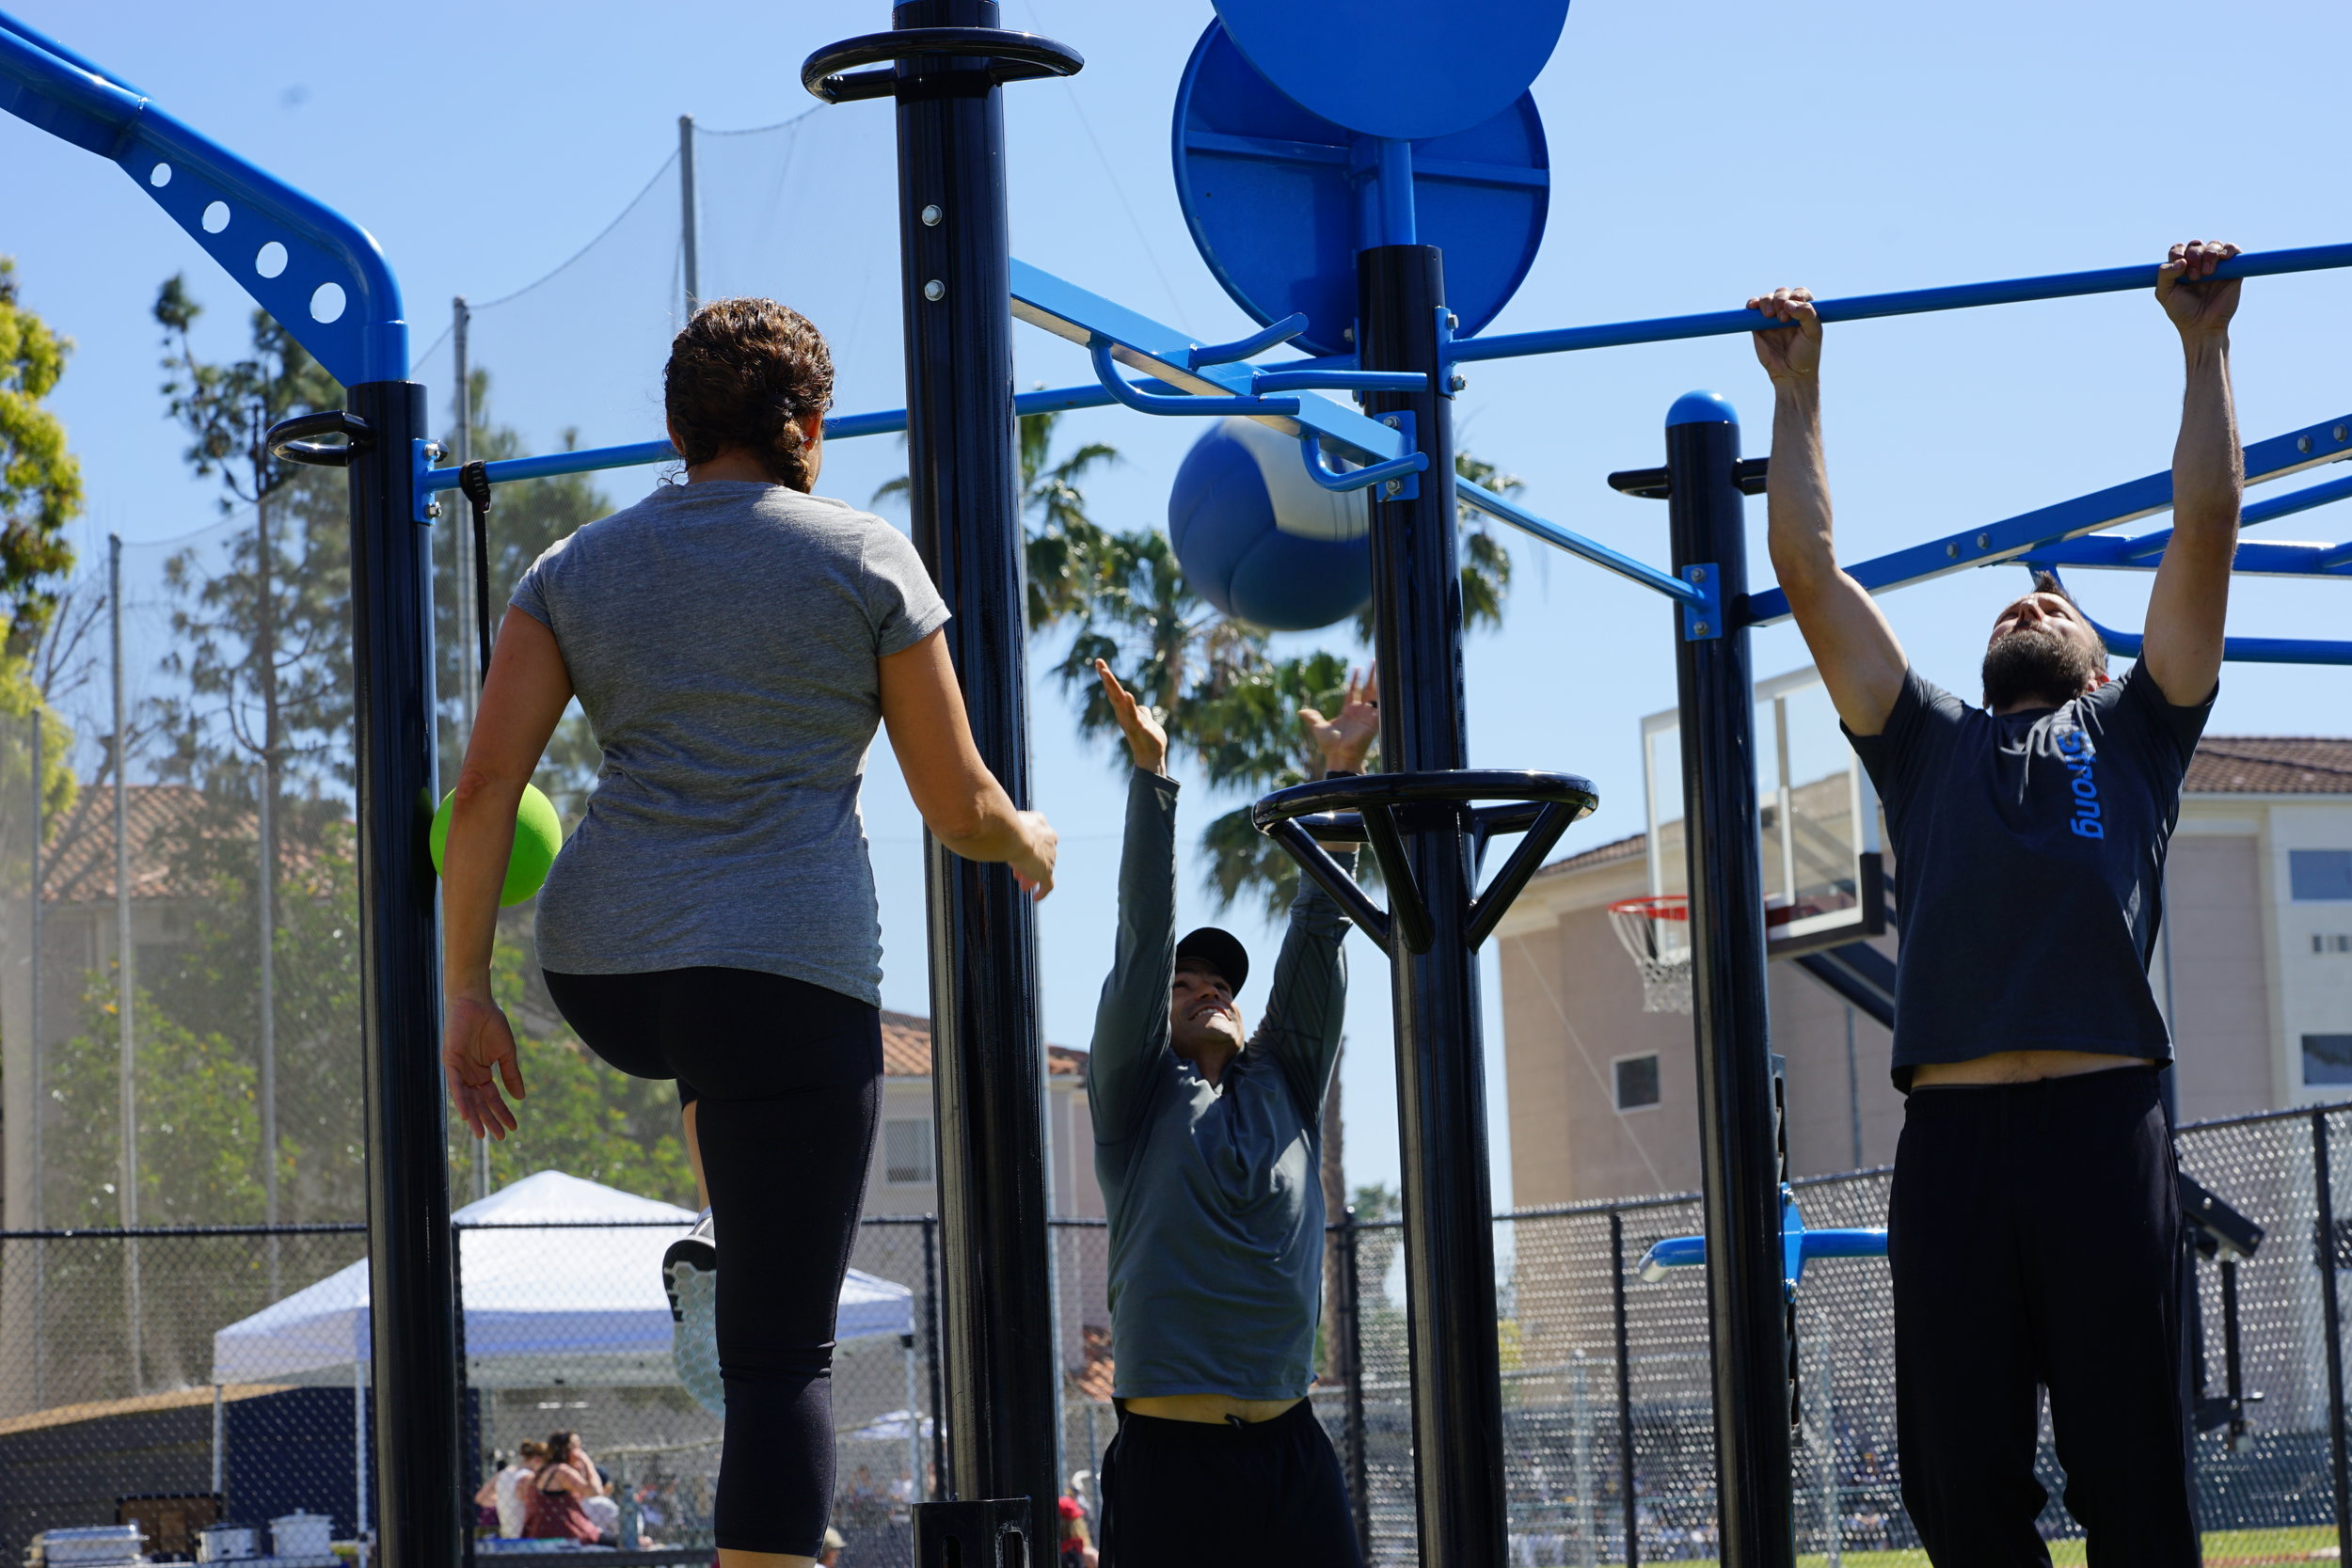 Team workout for functional fitness